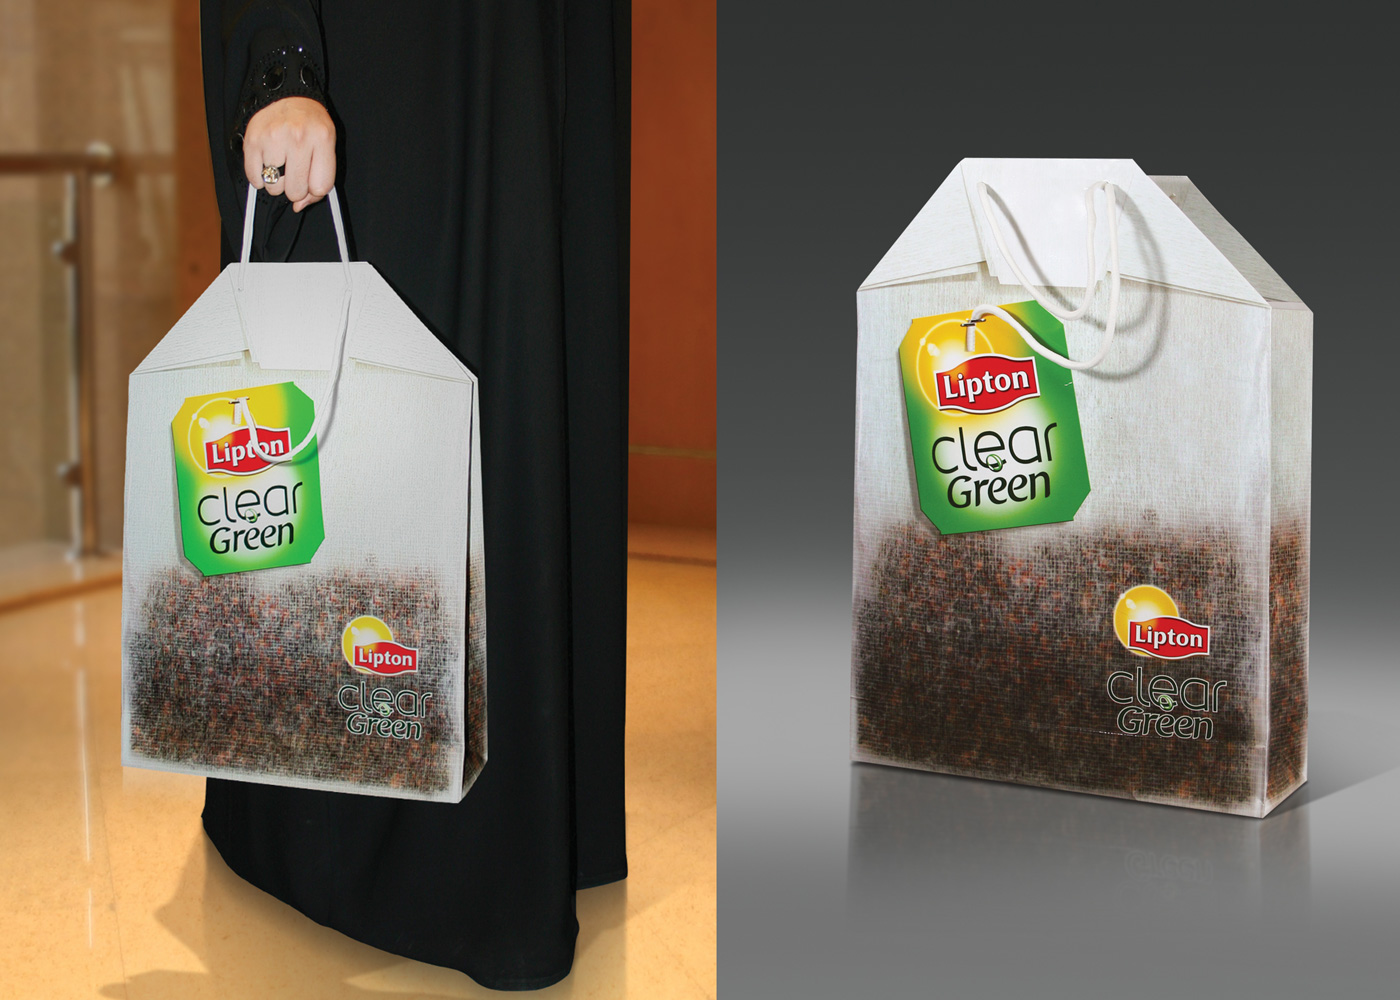 f6559dd30e5f7ce2e5fd2d21c2ad123b 45 Creativo Bagvertising Esempi Esempio Guerilla Marketing